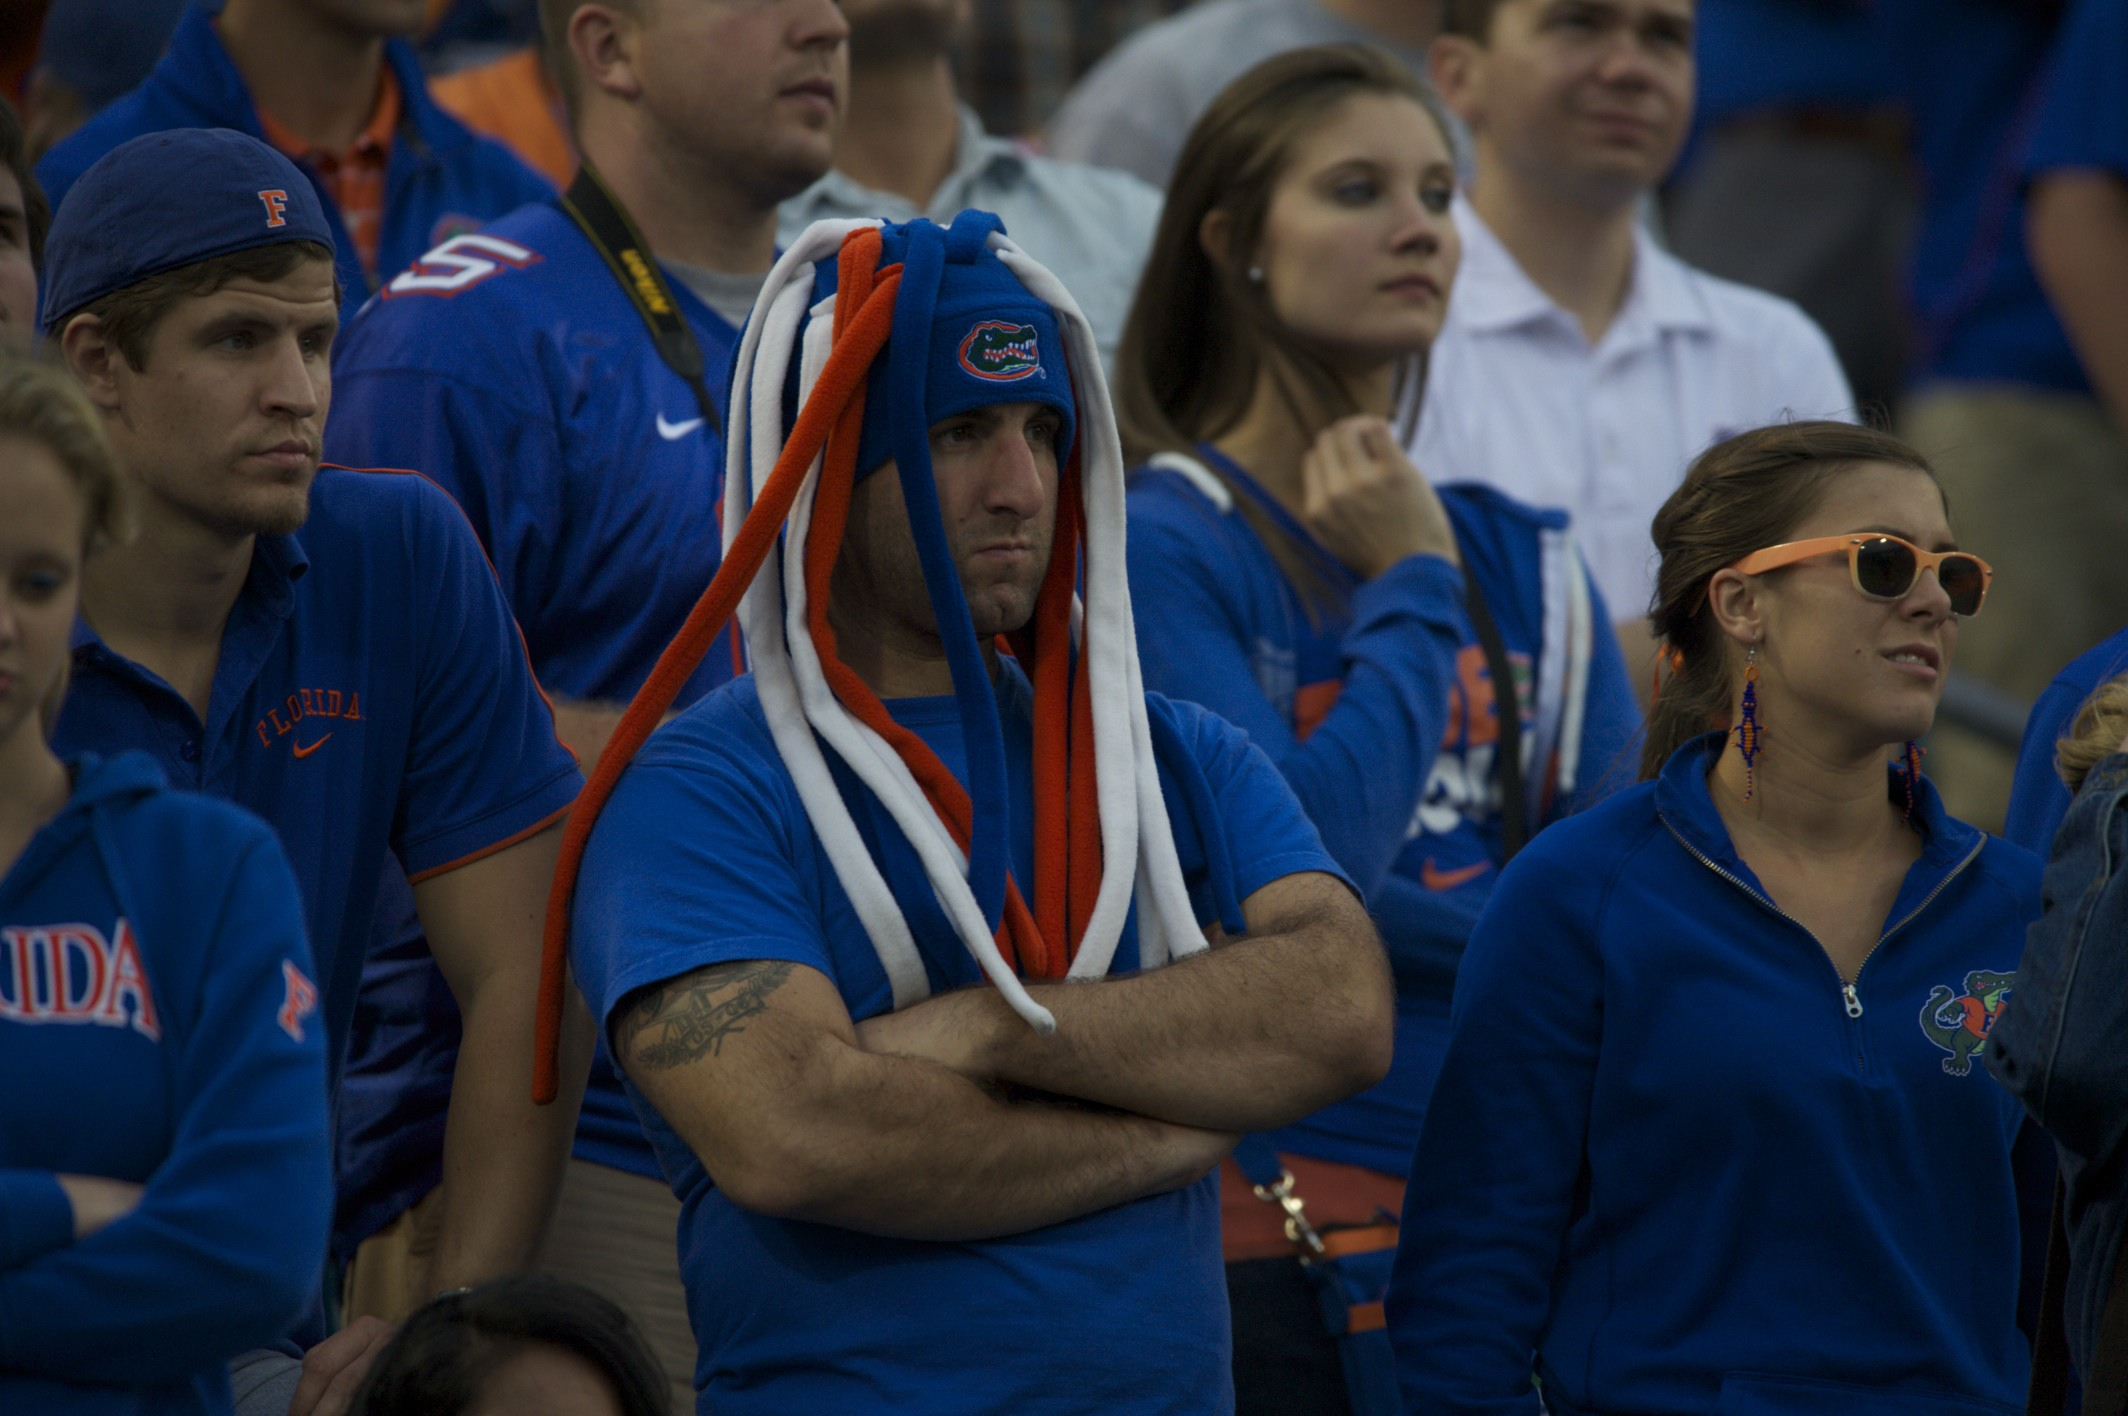 fl fan sad